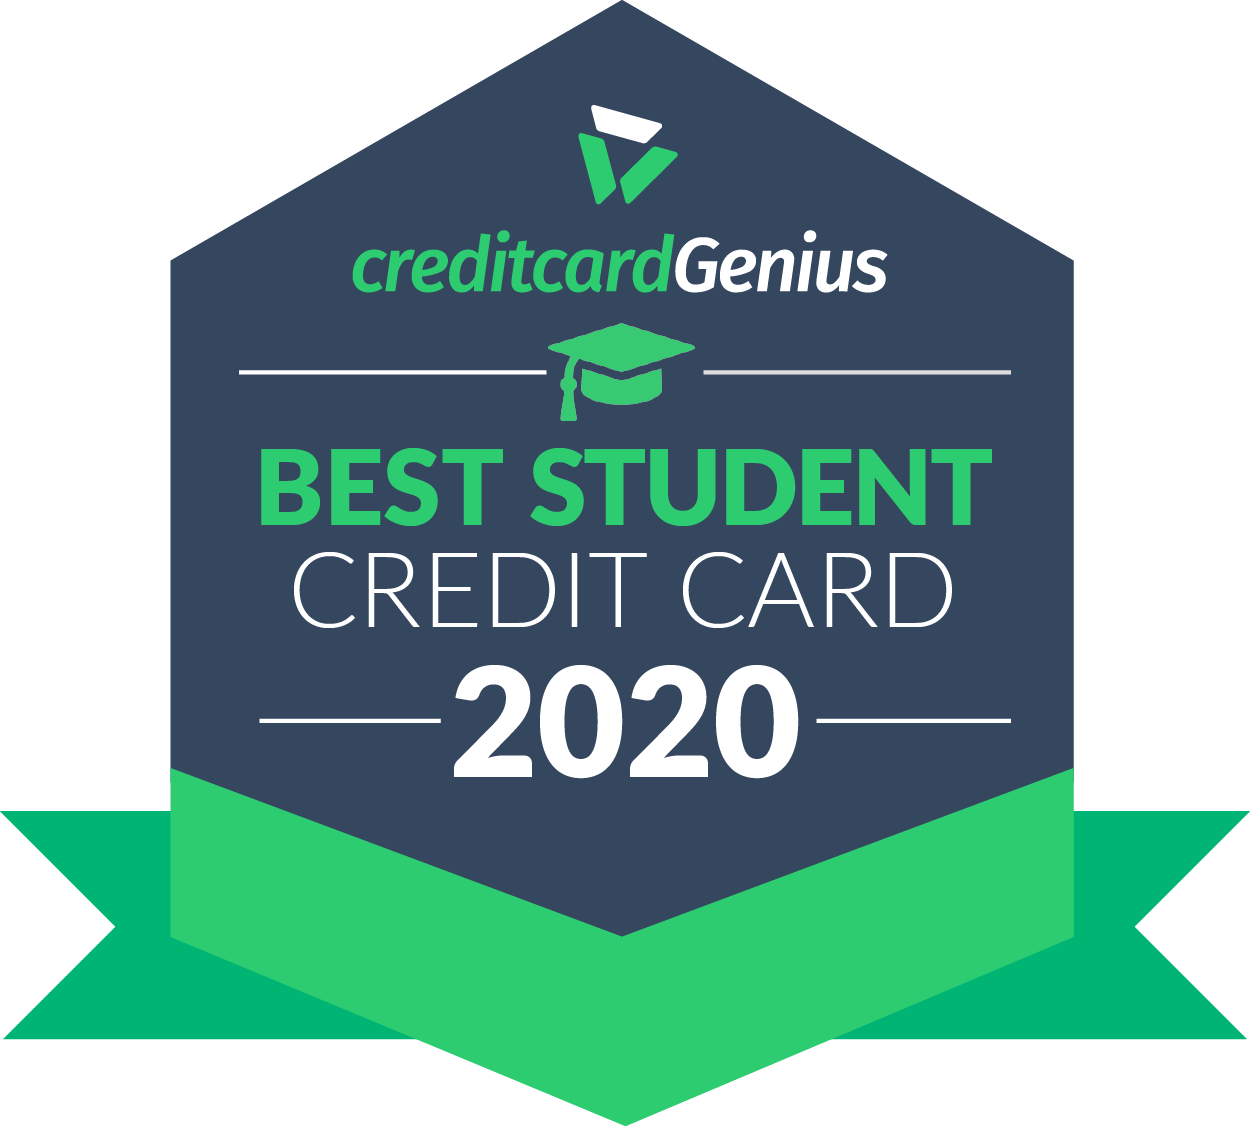 Best student credit card for 2020 award seal